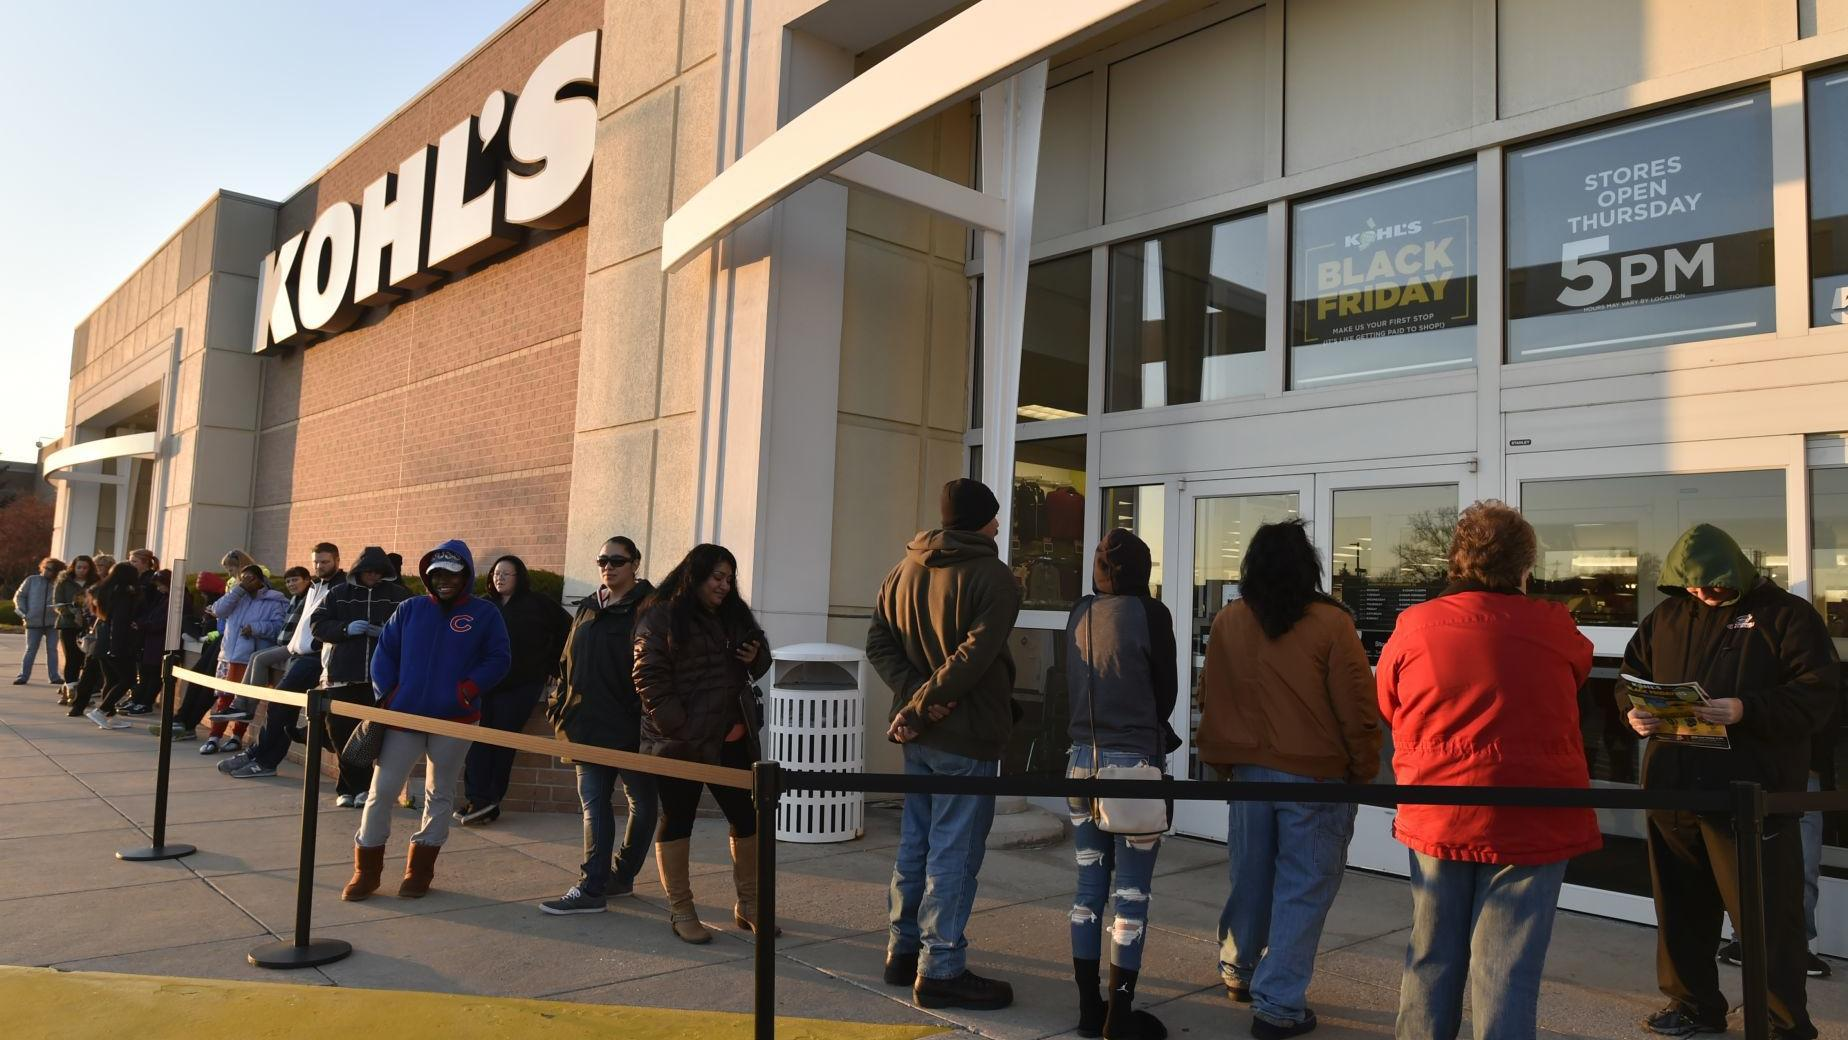 Kohl S Announces It Is Closing All Of Its U S Stores Starting At 7 P M Tonight Local News Journaltimes Com